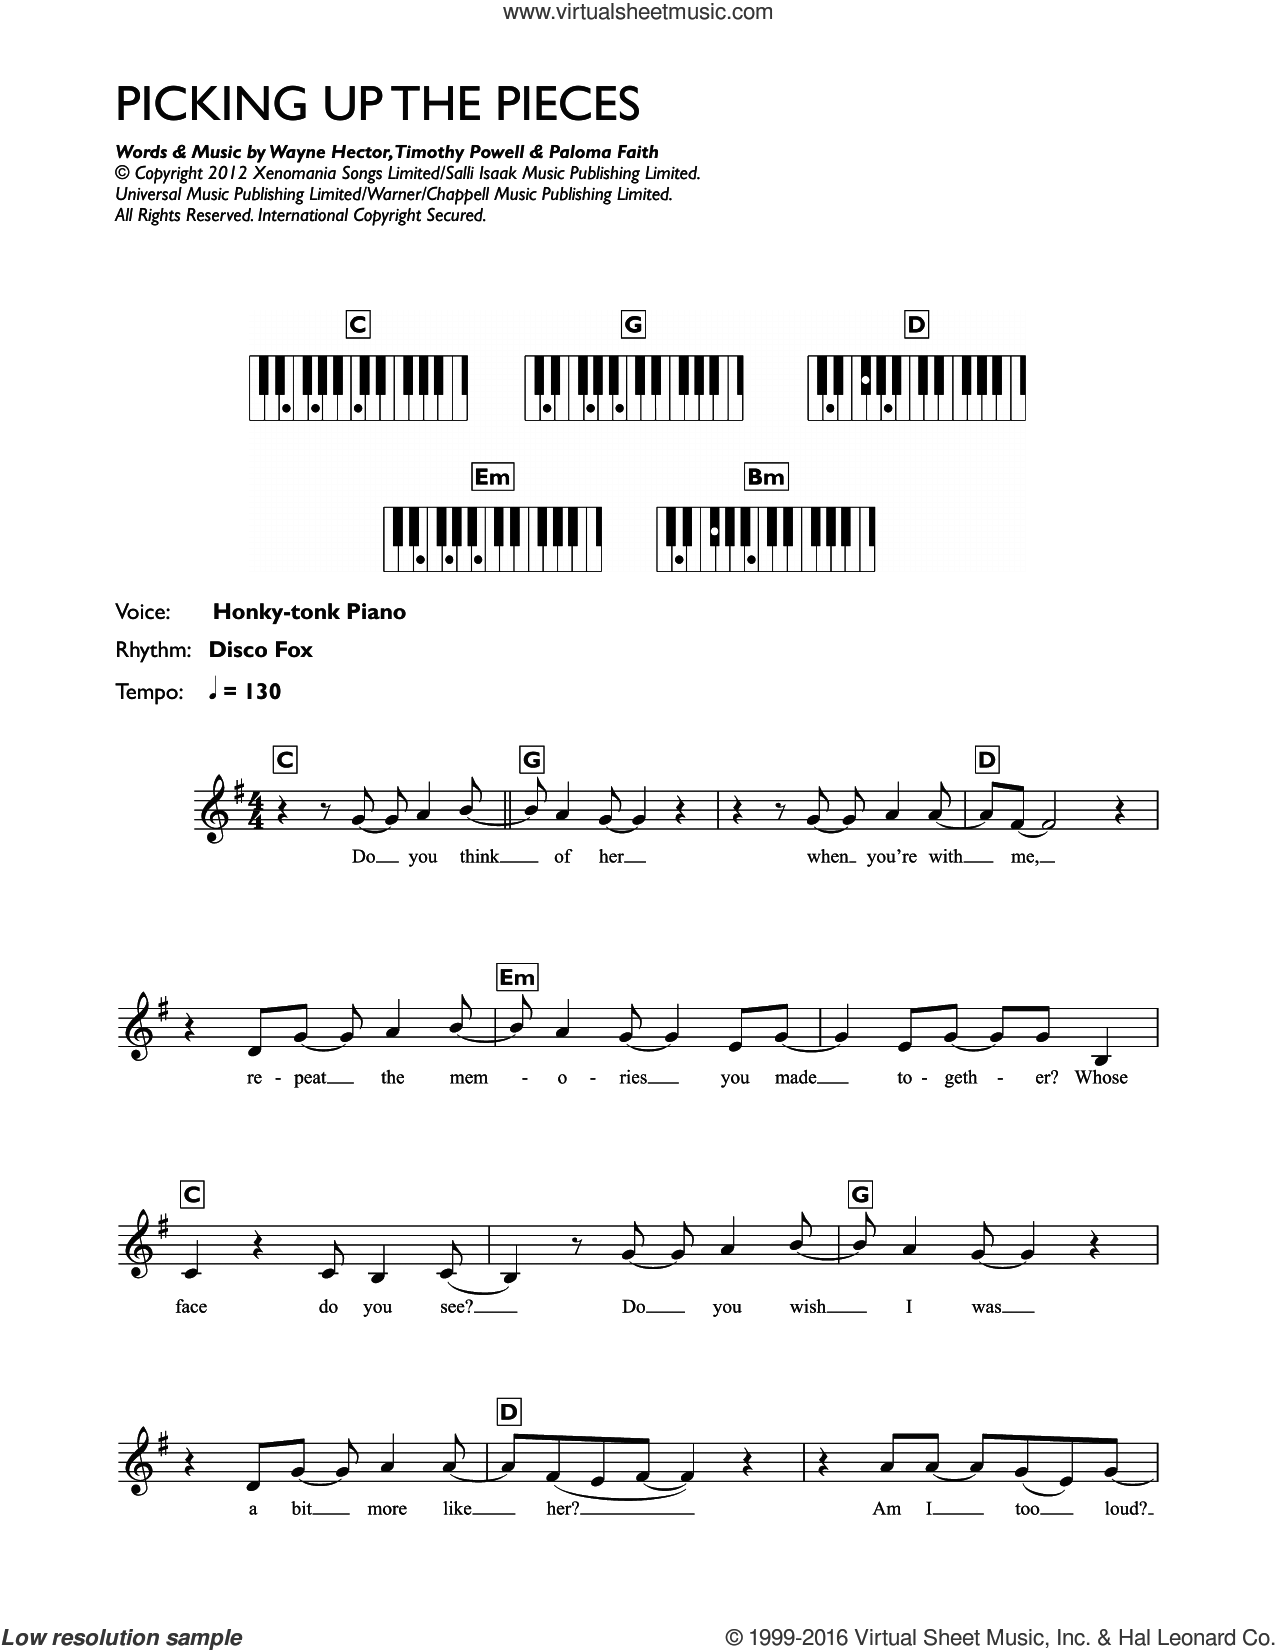 Picking Up The Pieces sheet music for piano solo (chords, lyrics, melody) by Paloma Faith, Timothy Powell and Wayne Hector, intermediate piano (chords, lyrics, melody)